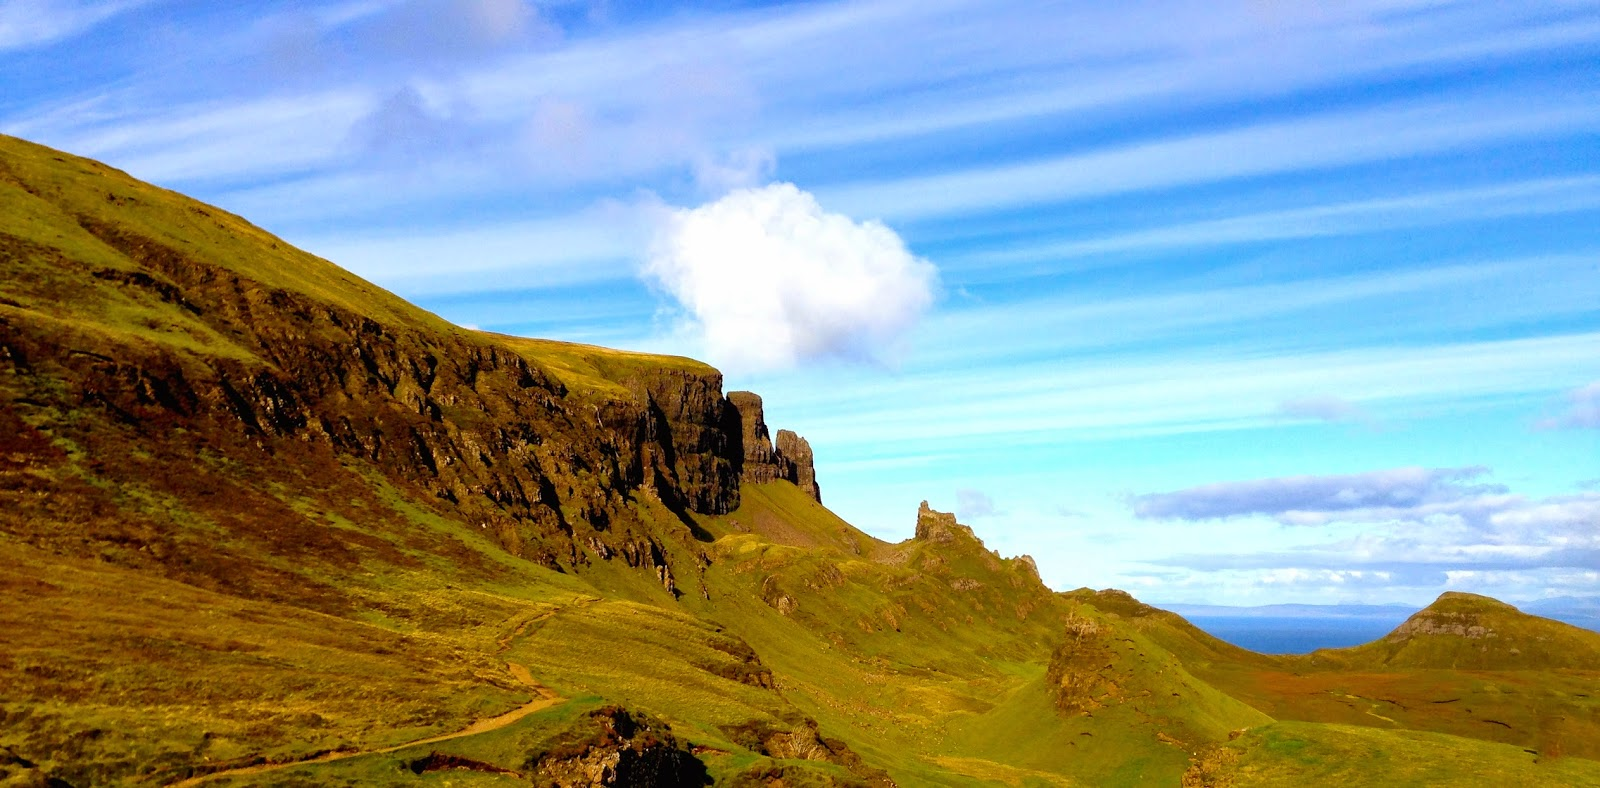 Quiraing; Trotternish Peninsula, Isle of Skye, Scotland